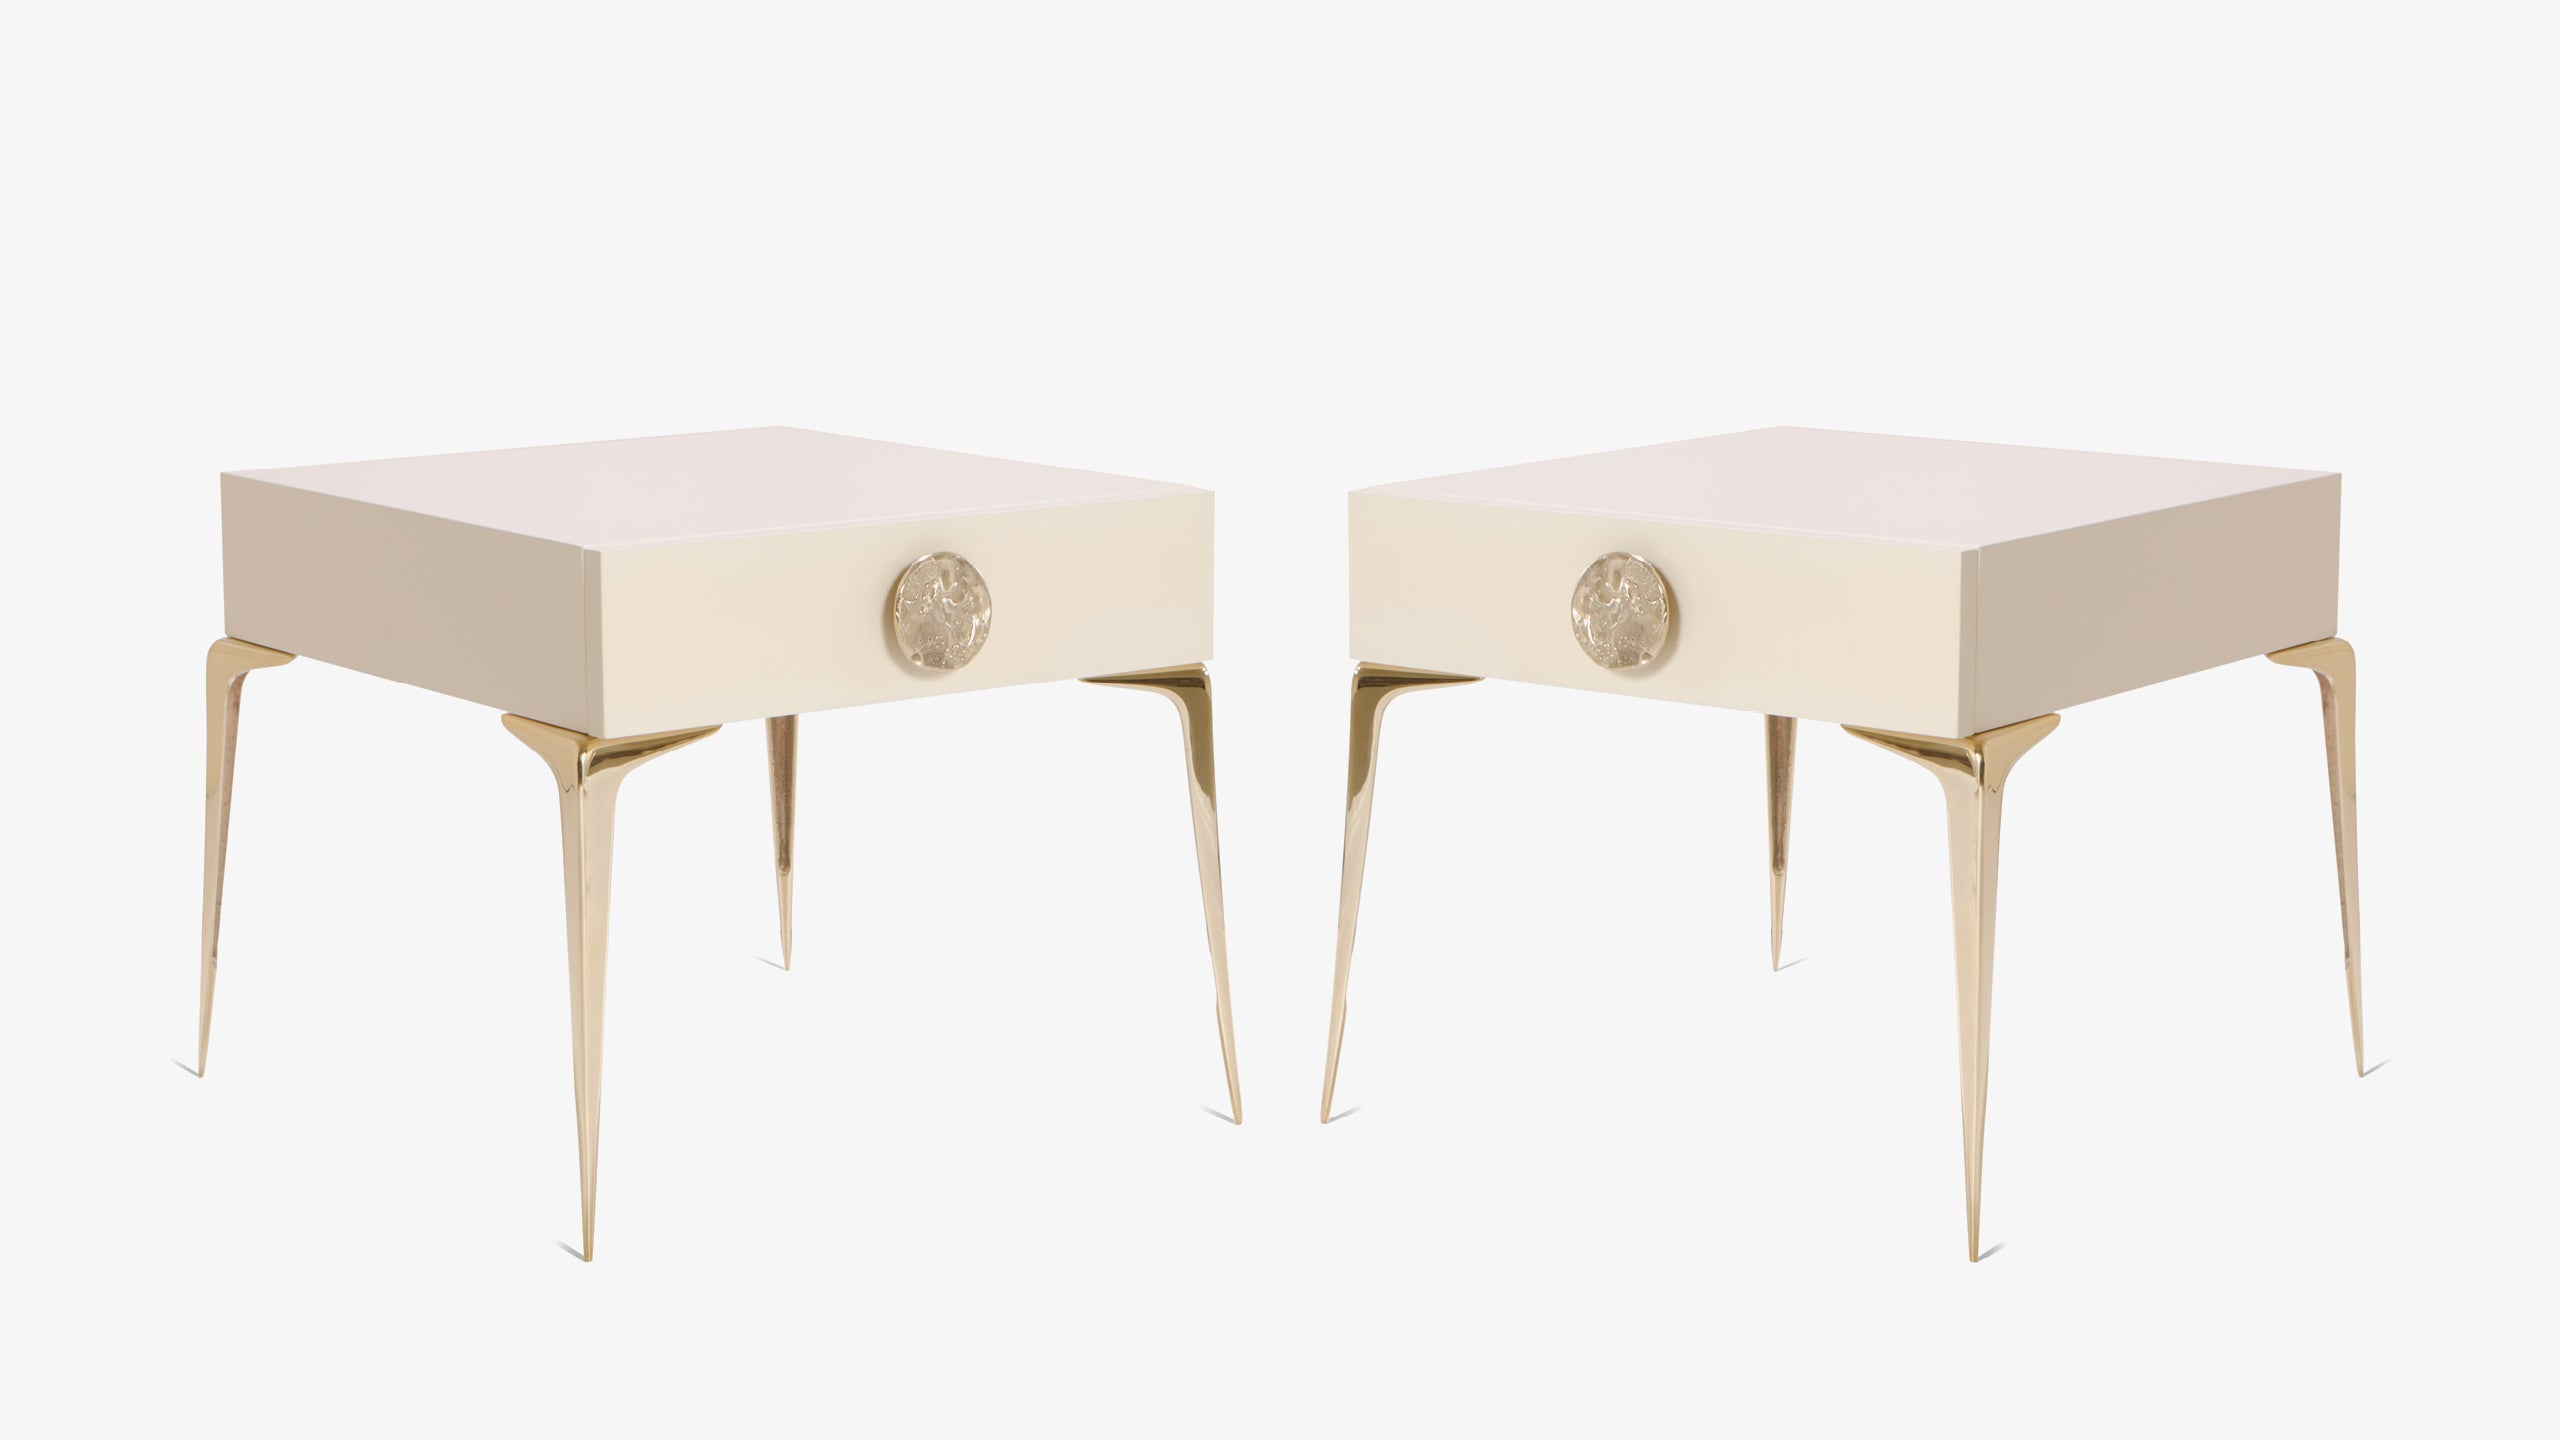 Colette Petite Brass Nightstands In Ivory Lacquer By Montage, Pair For Sale  At 1stdibs